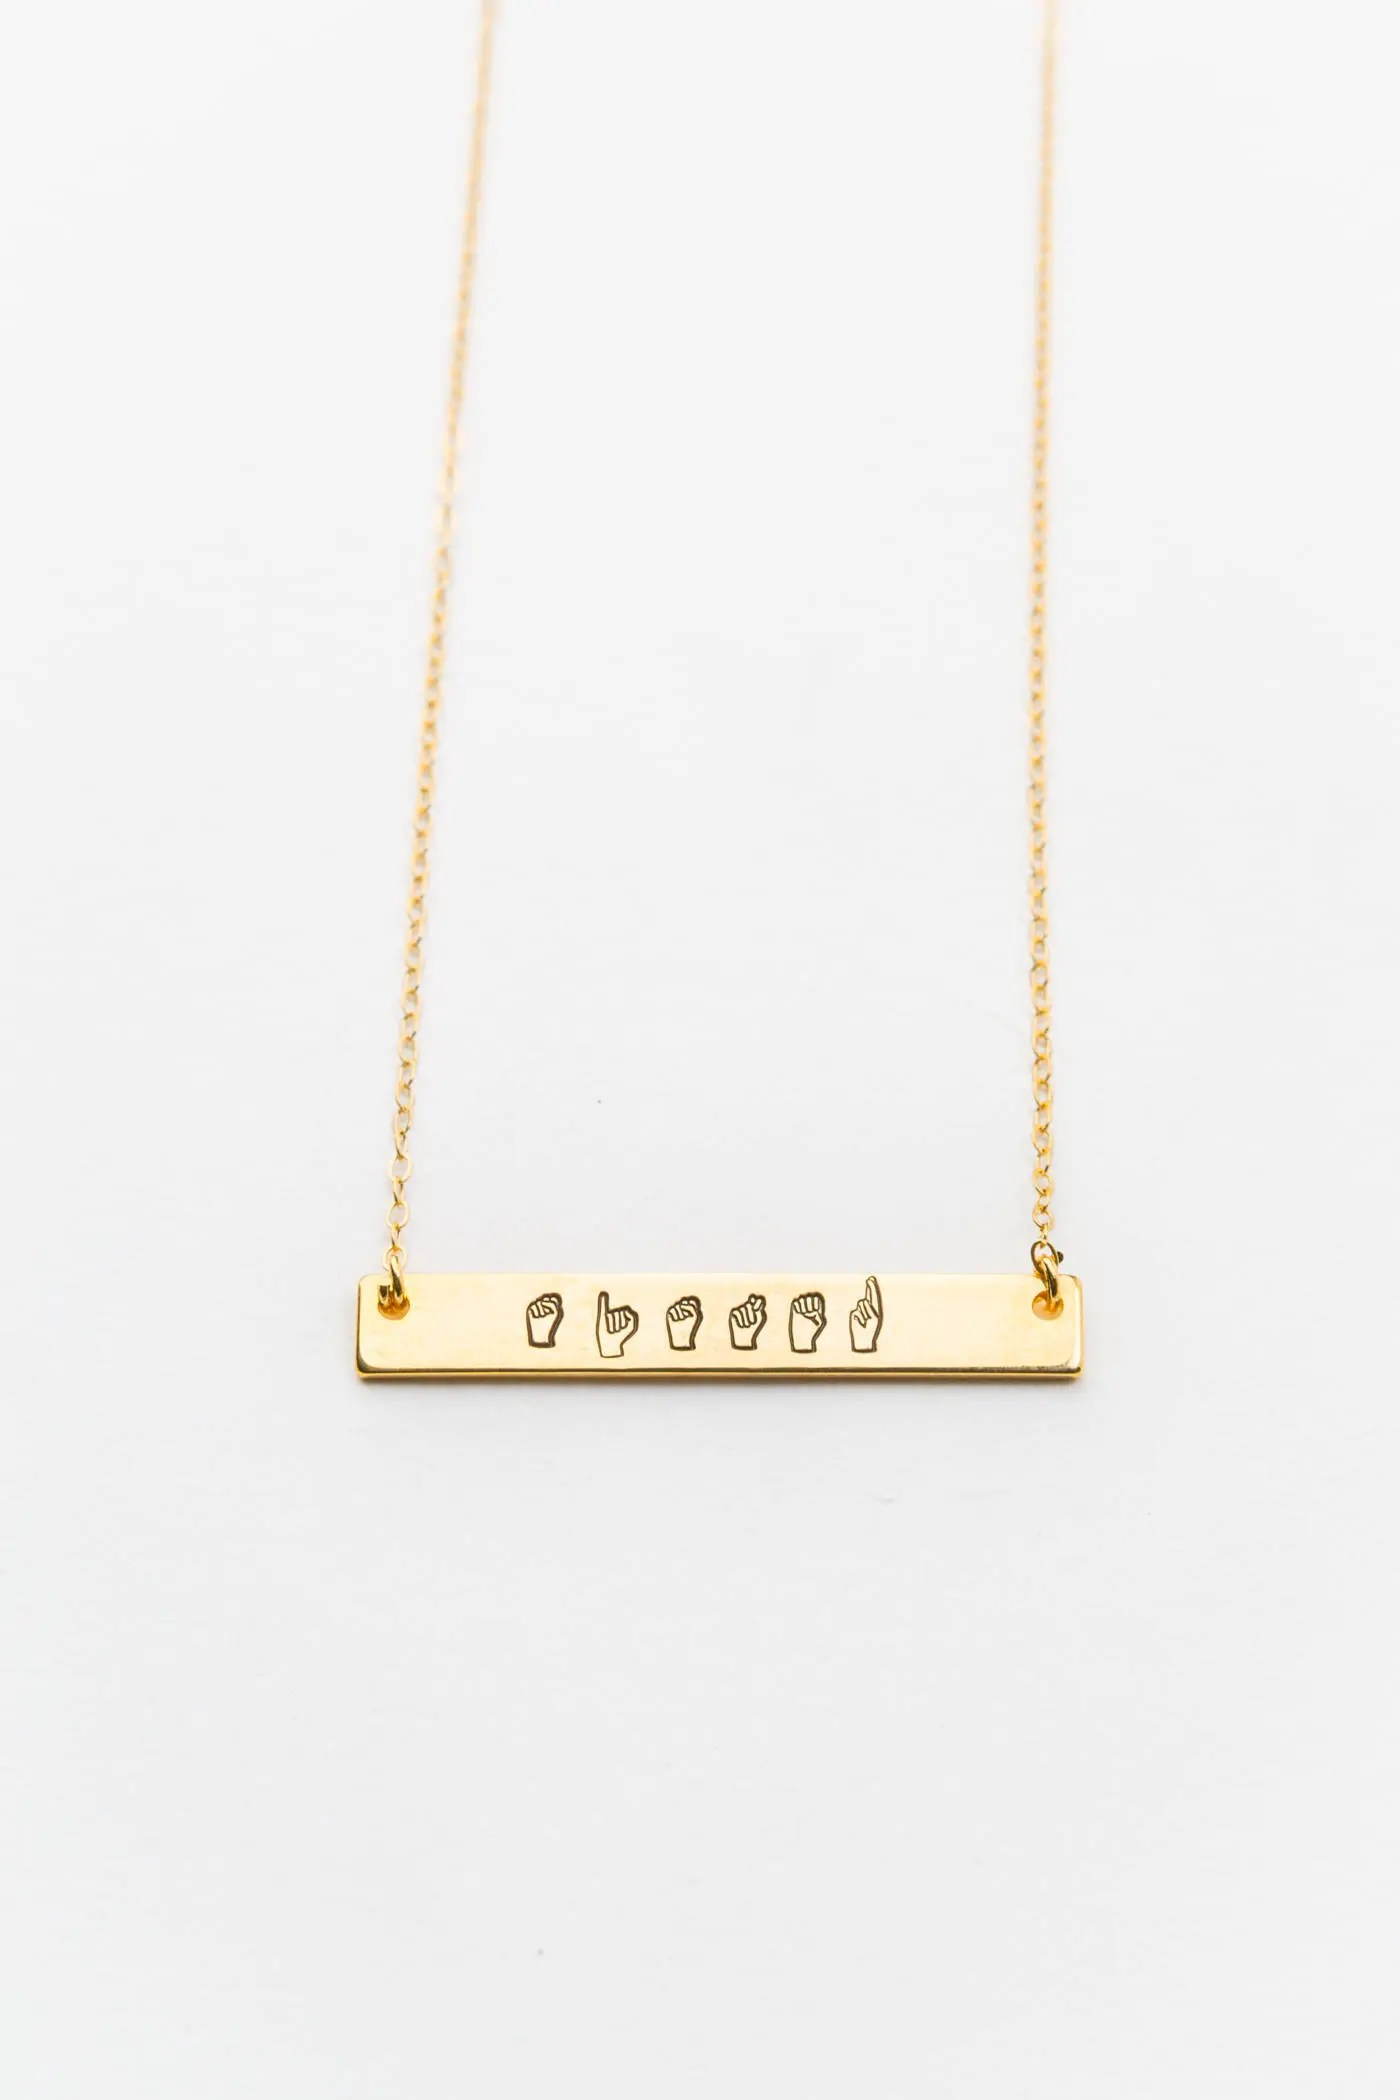 Personalized Name Necklace in Sign Language Bar Necklace // image 2